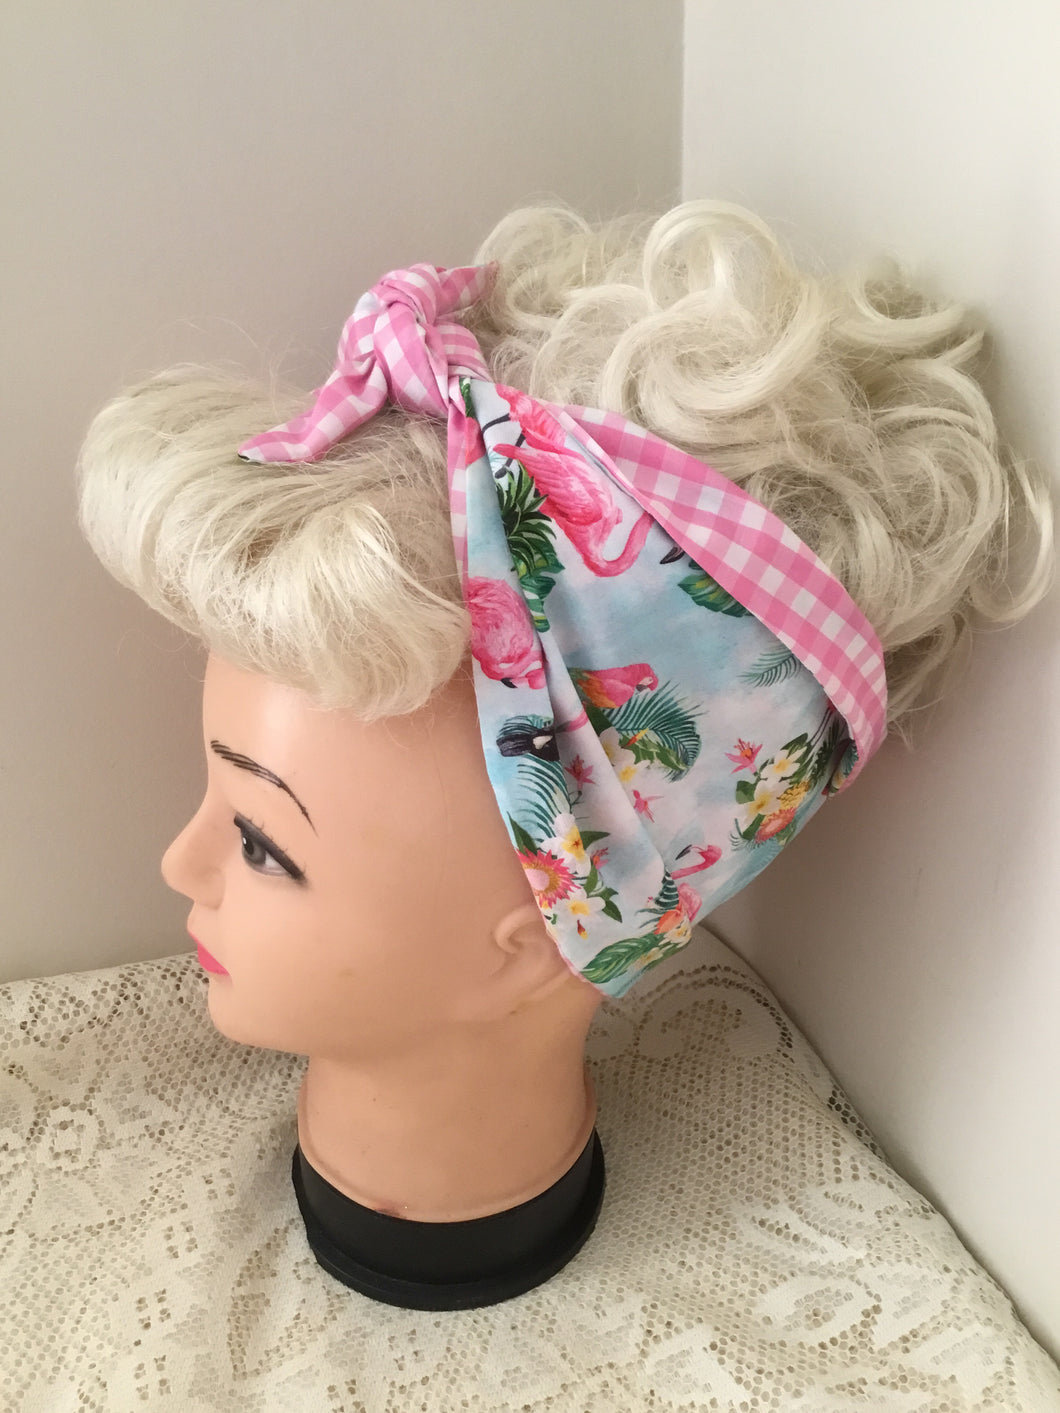 TROPICAL FLAMINGO 🦩 - vintage inspired do-rag